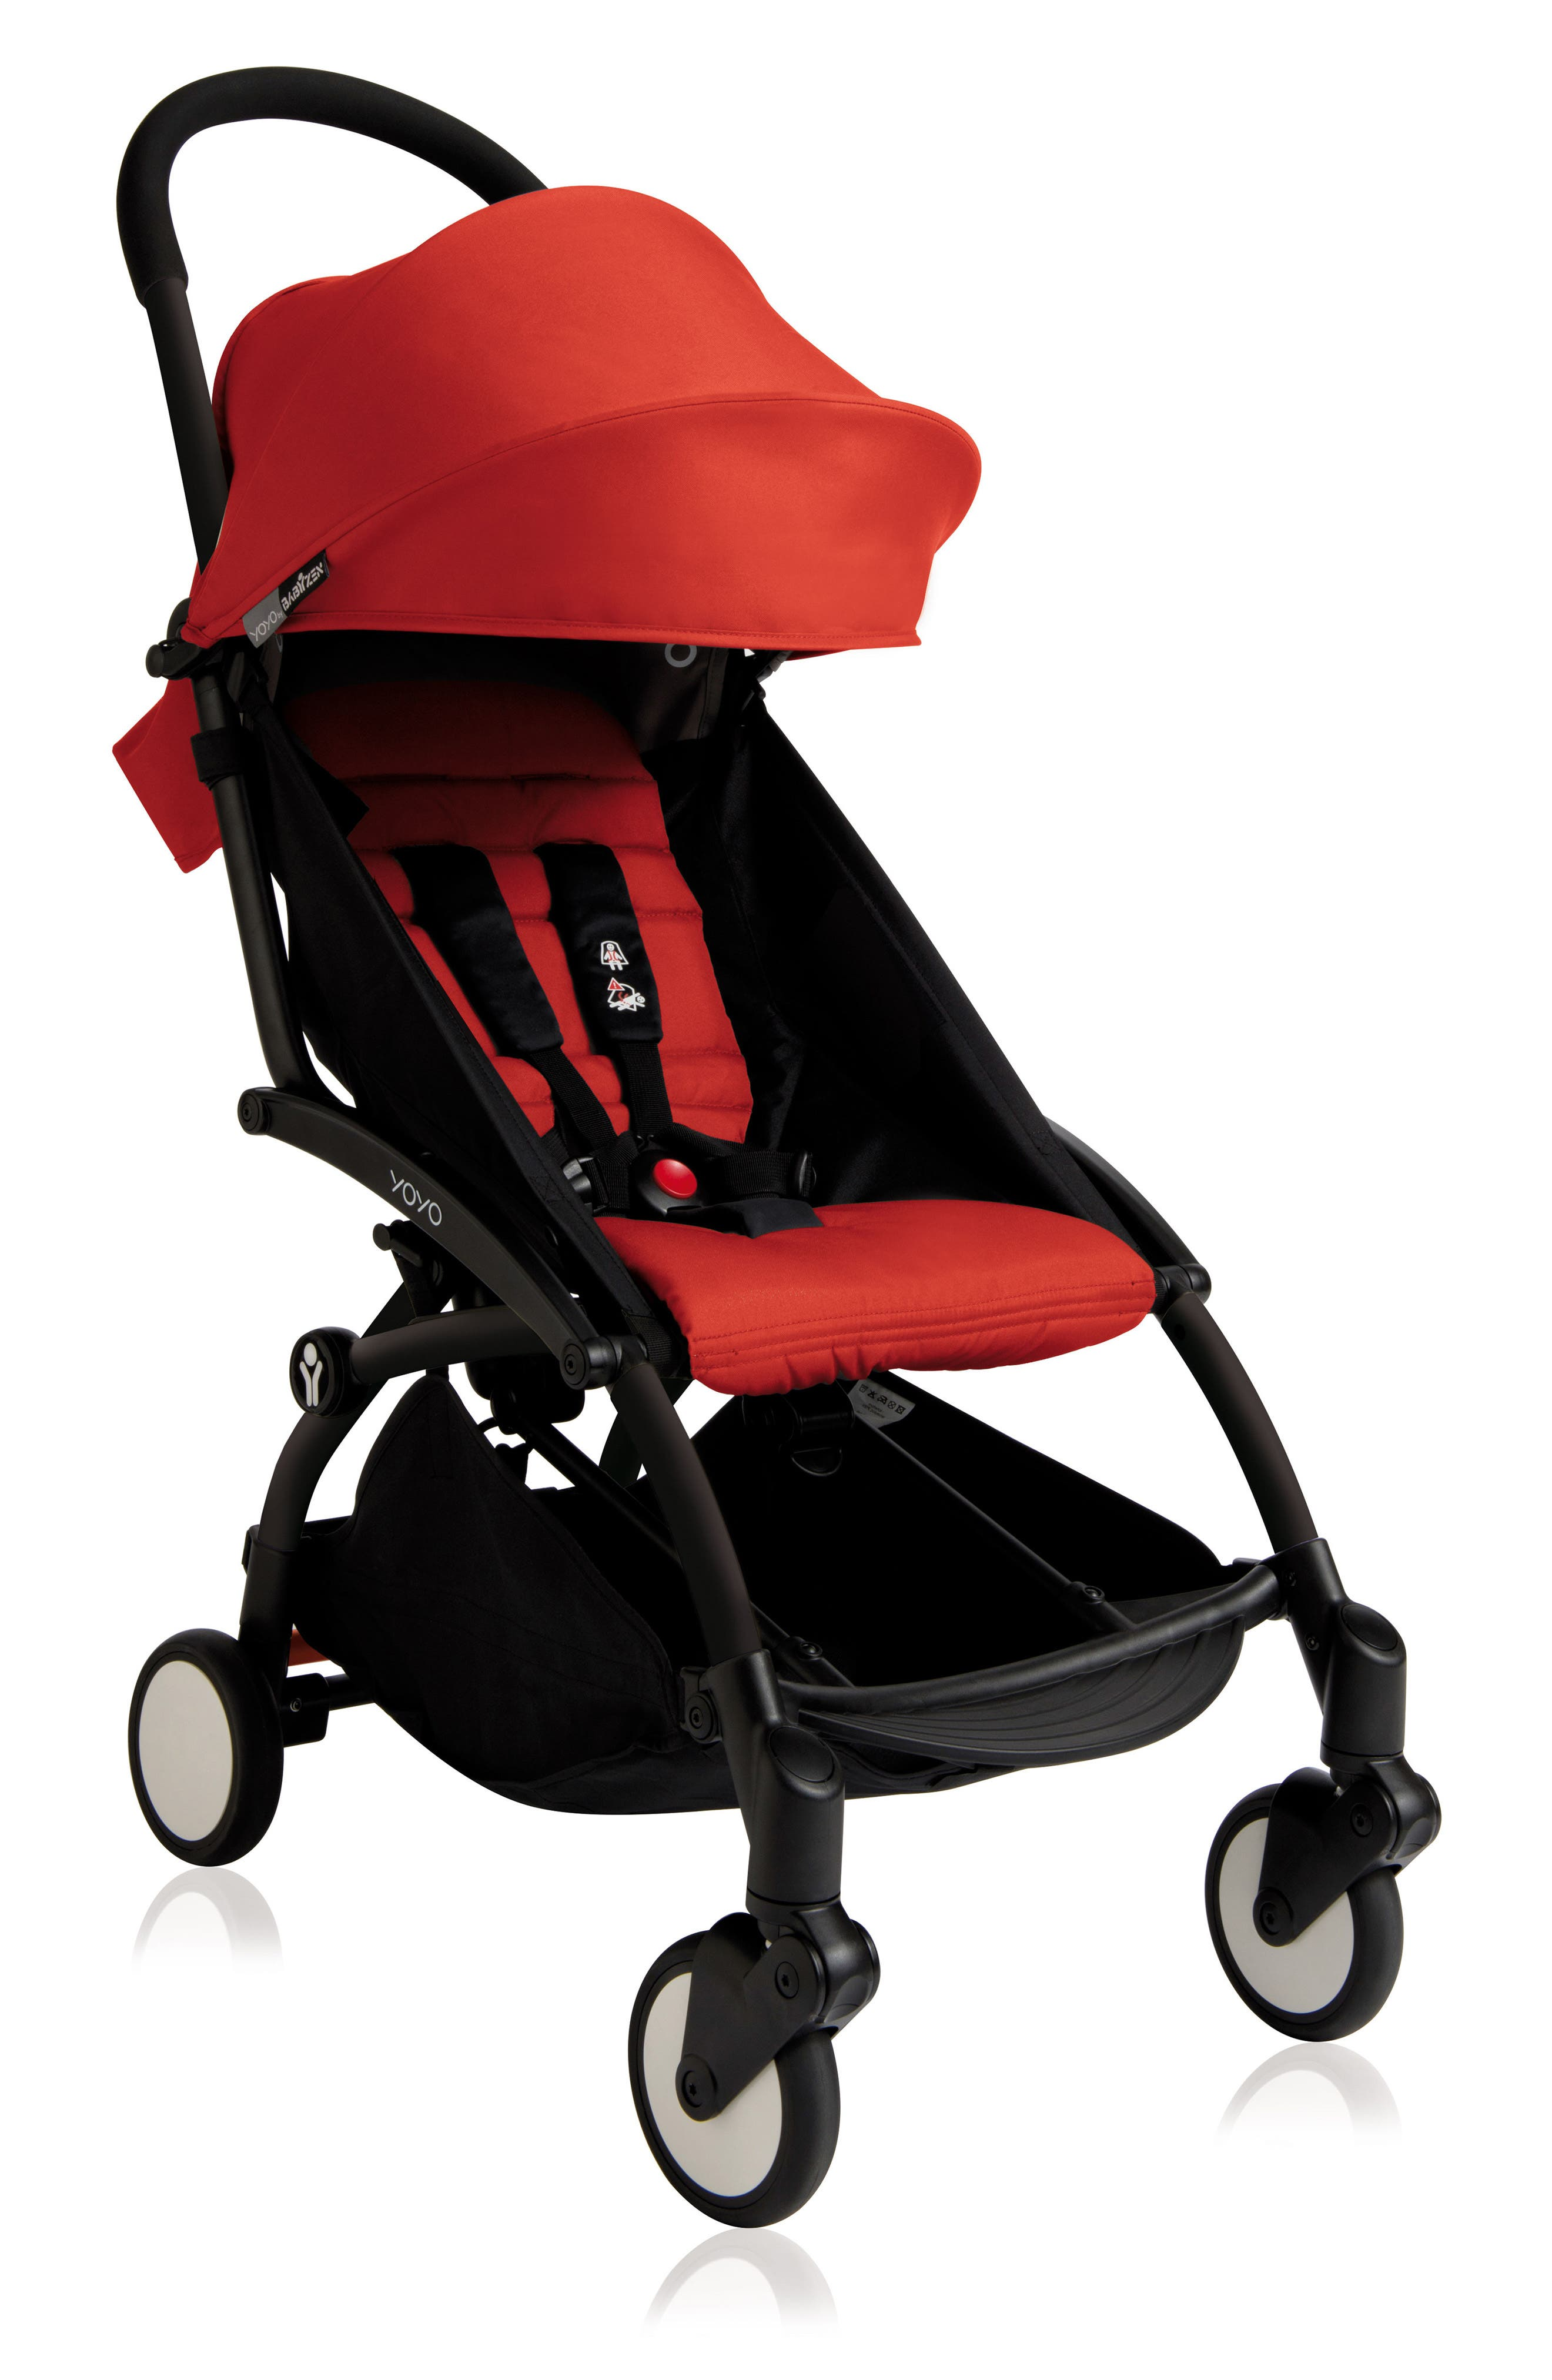 BABYZEN YOYO+ Complete Stroller with Toddler/Little Kid Color Pack Fabric Set,                         Main,                         color, Black/ Red